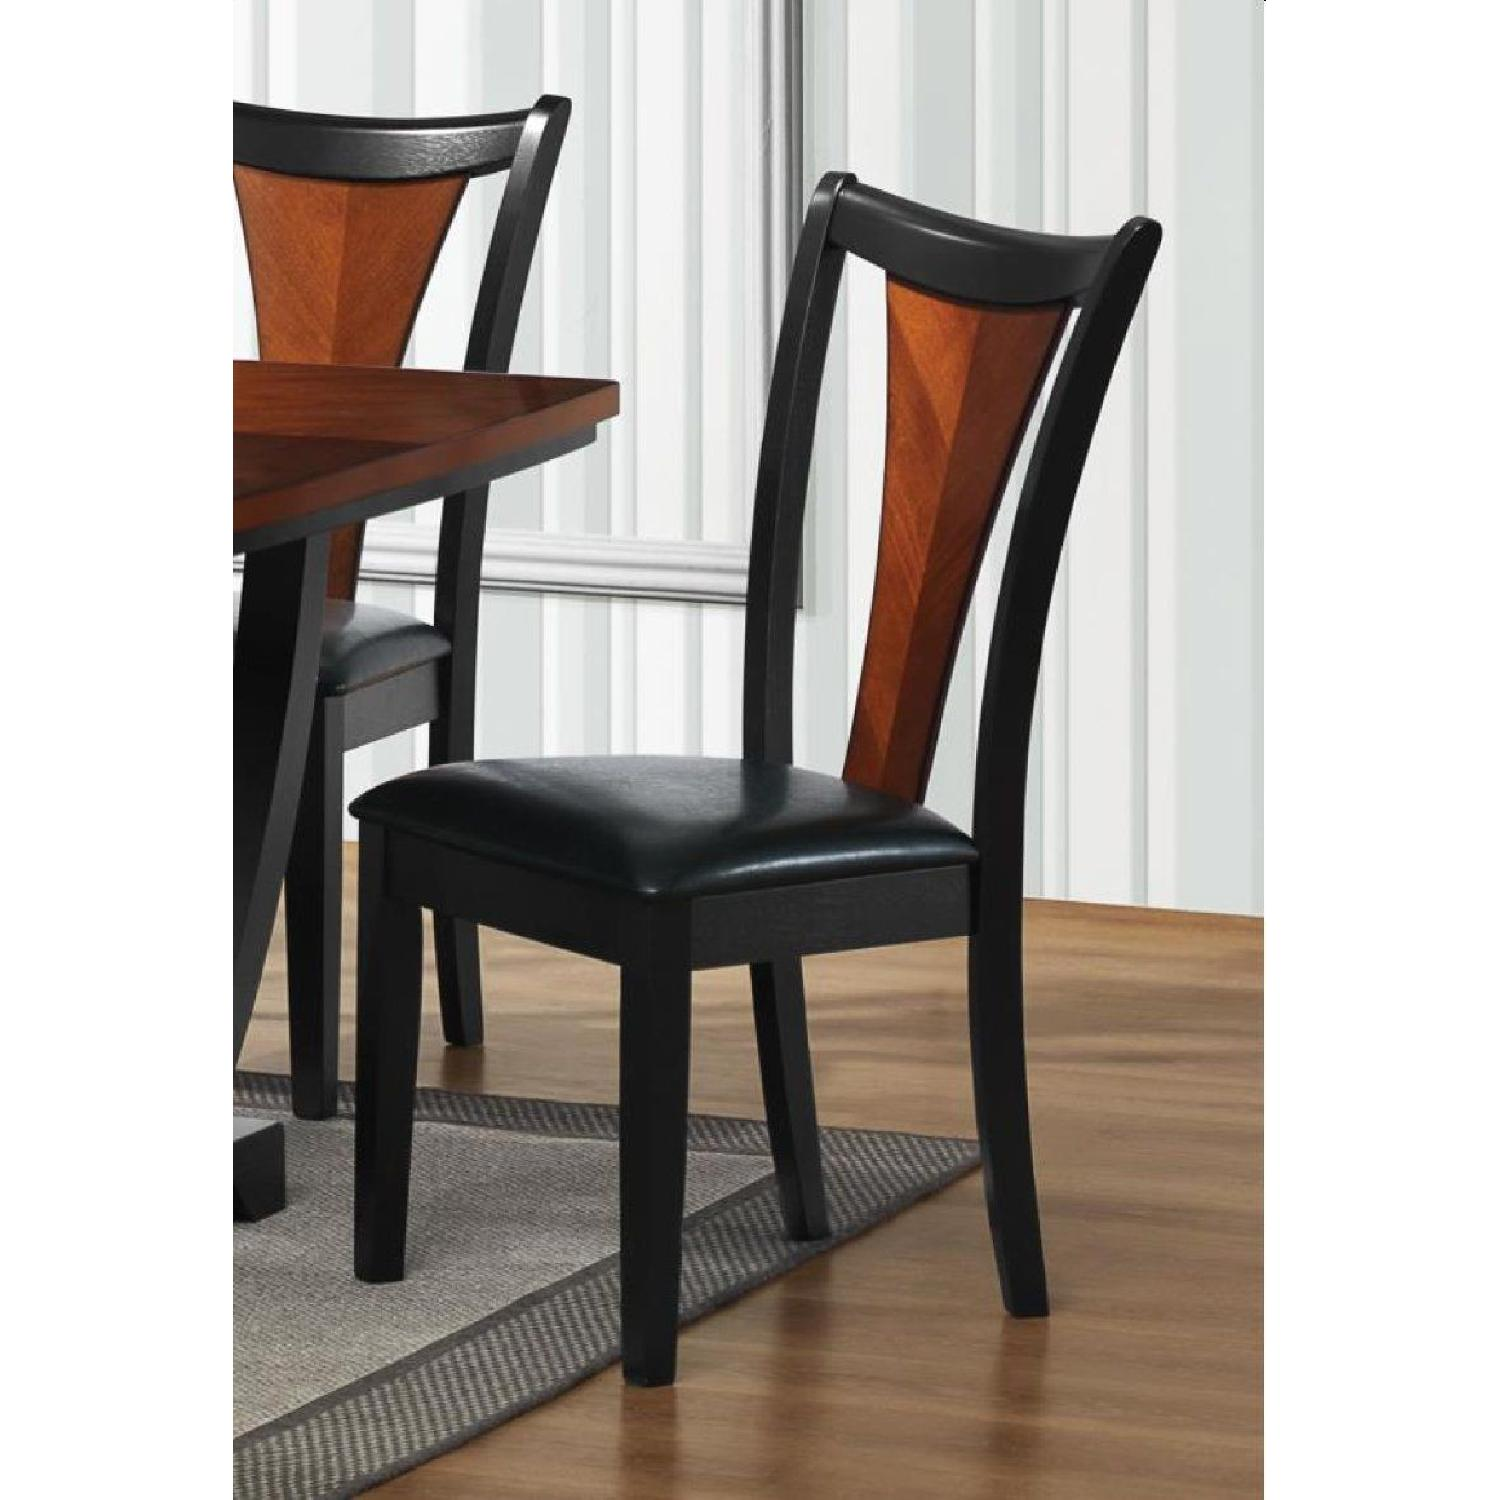 Dining Chair in 2-Tone Amber/Black Finish - image-3